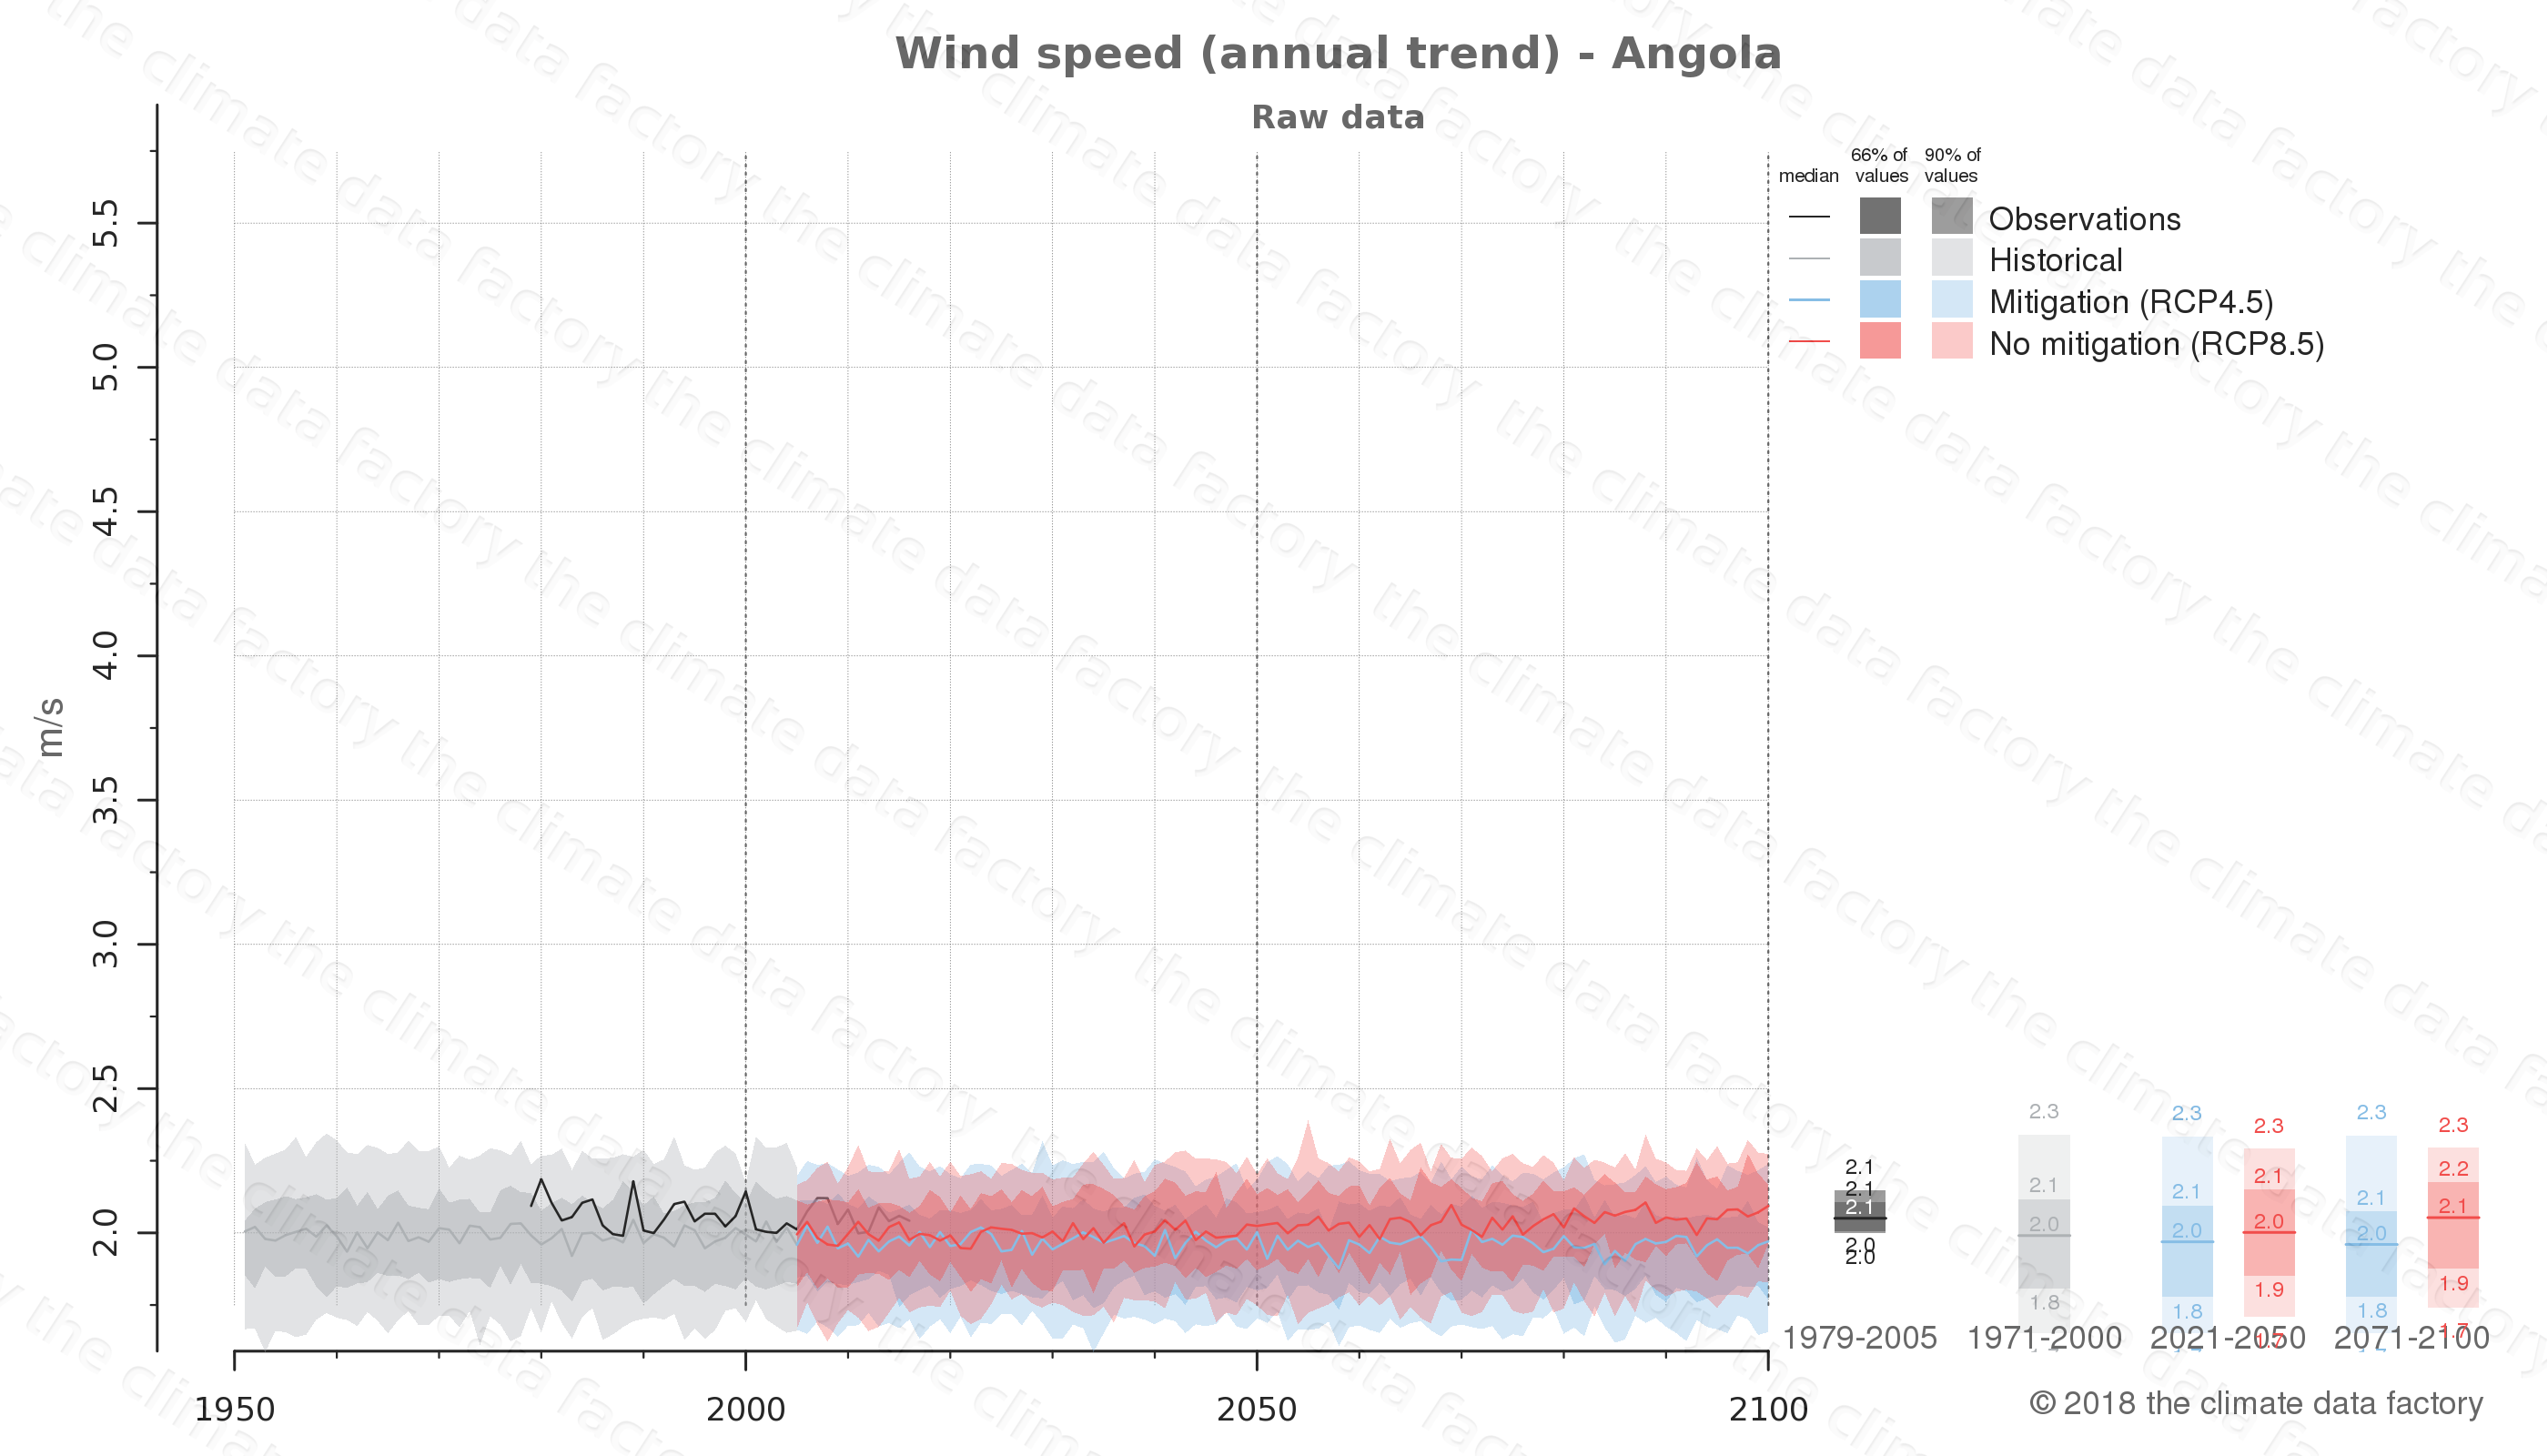 climate change data policy adaptation climate graph country data wind speed angola africa